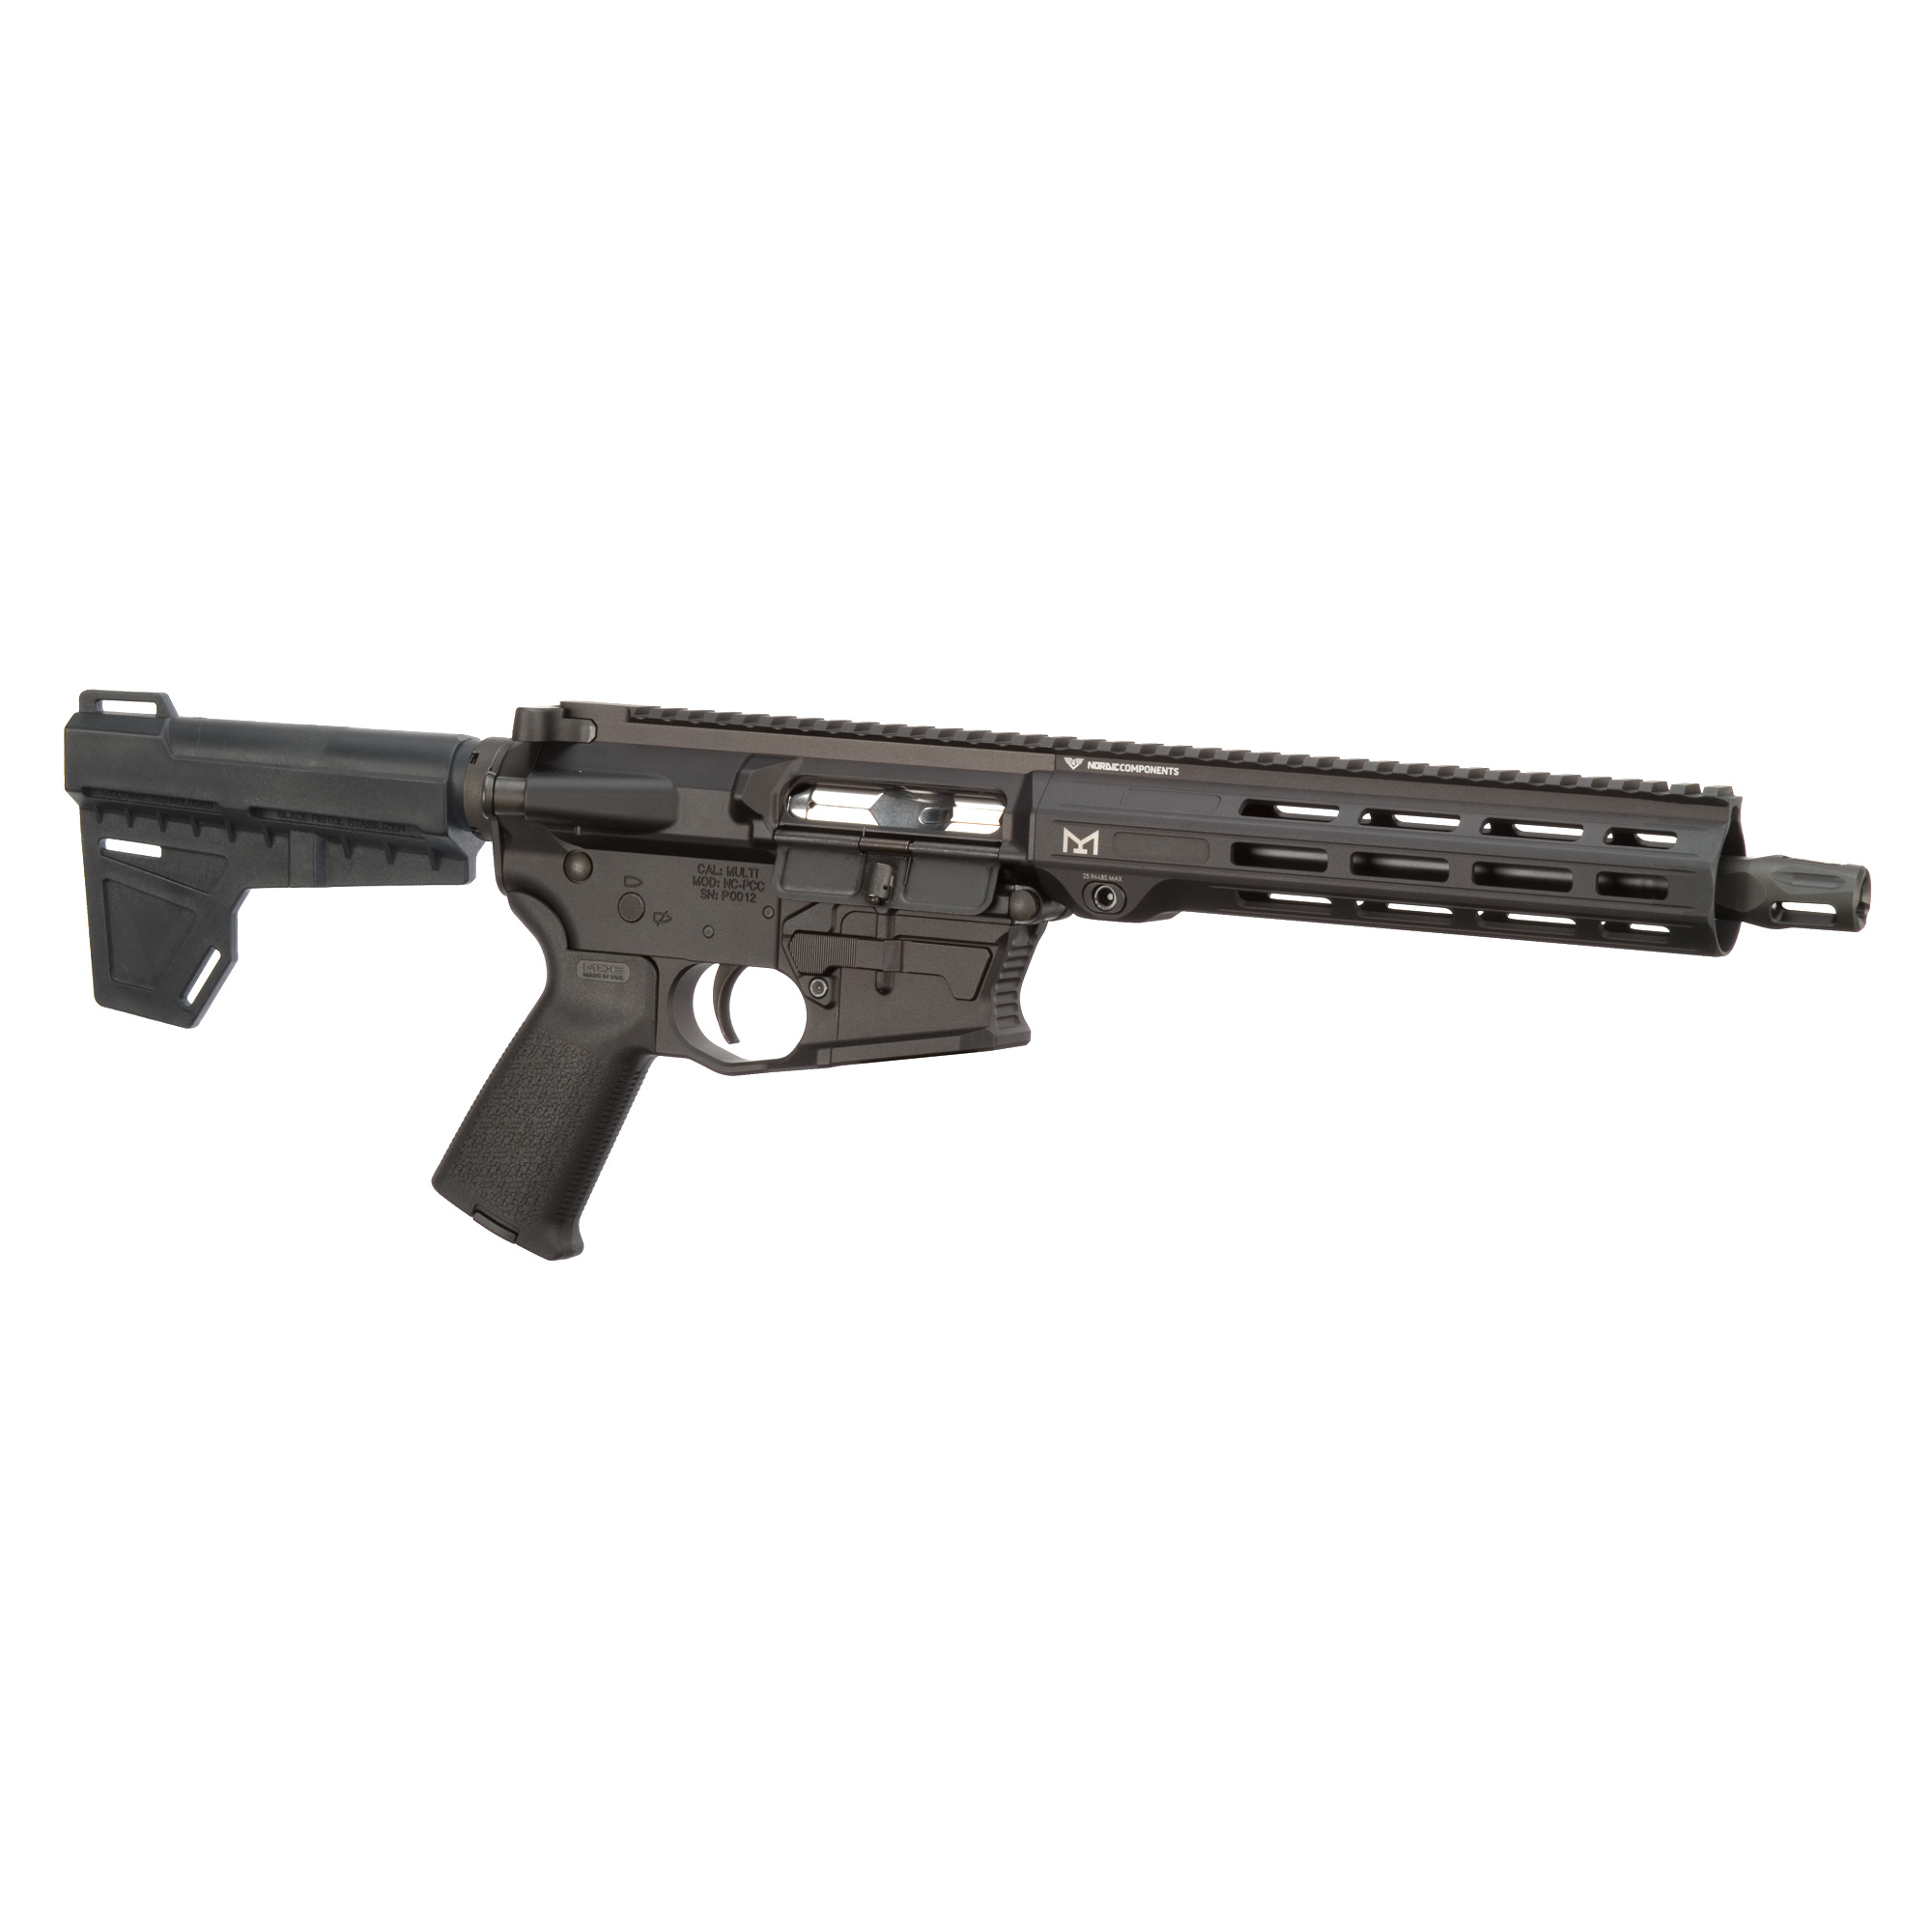 """The Pistol Caliber Carbine features a patented modular lower receiver"""" with removable / interchangeable magwell"""" allowing you to use more than one style of magazine. Using the same lower"""" this PCC can be configured to run Glock magazines. Includes one 17-round magazine."""